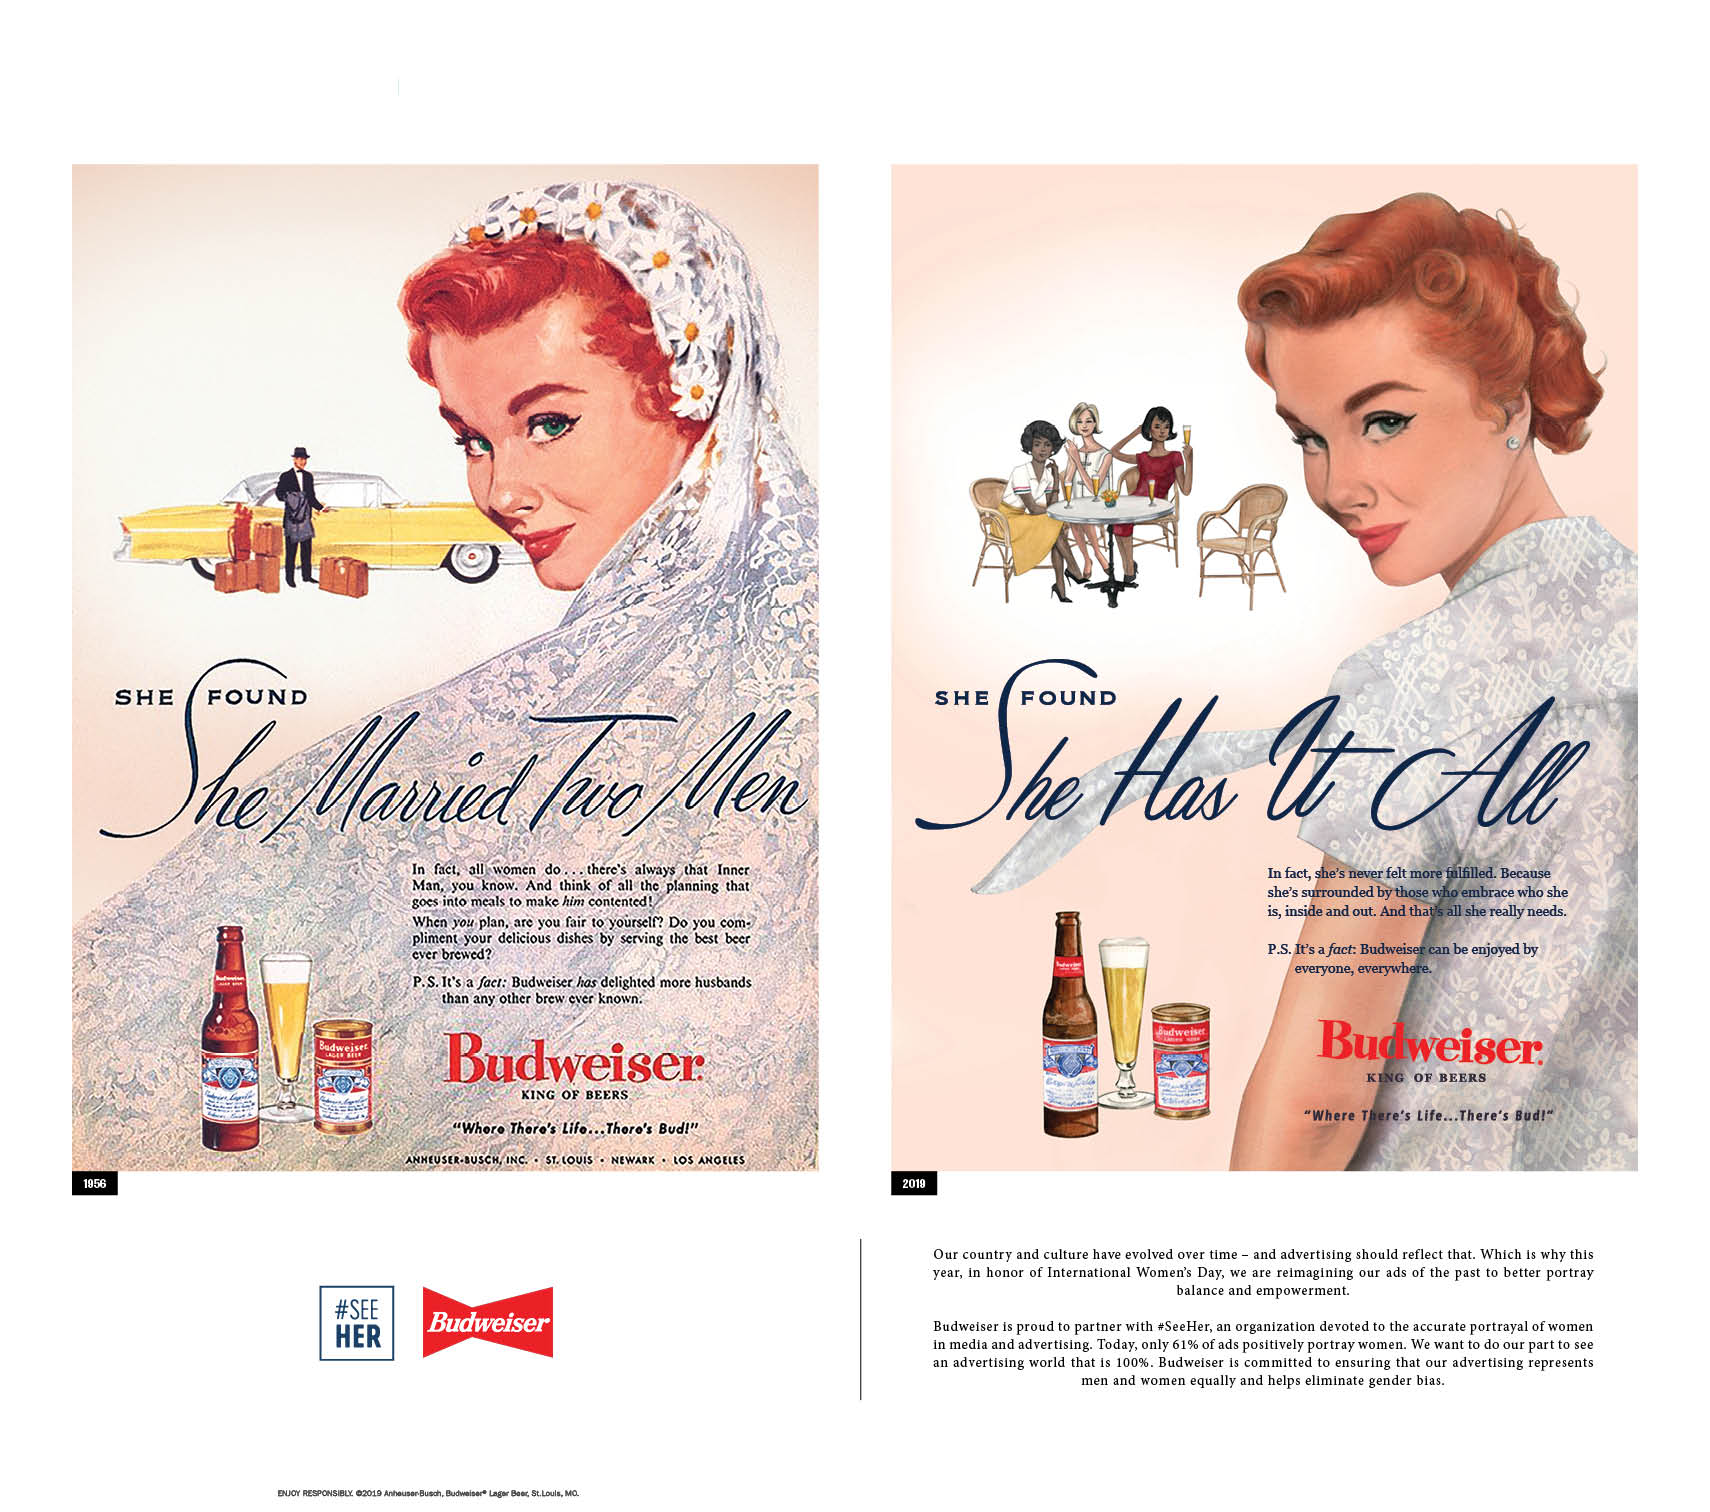 Budweiser recreated ads from the 1950s